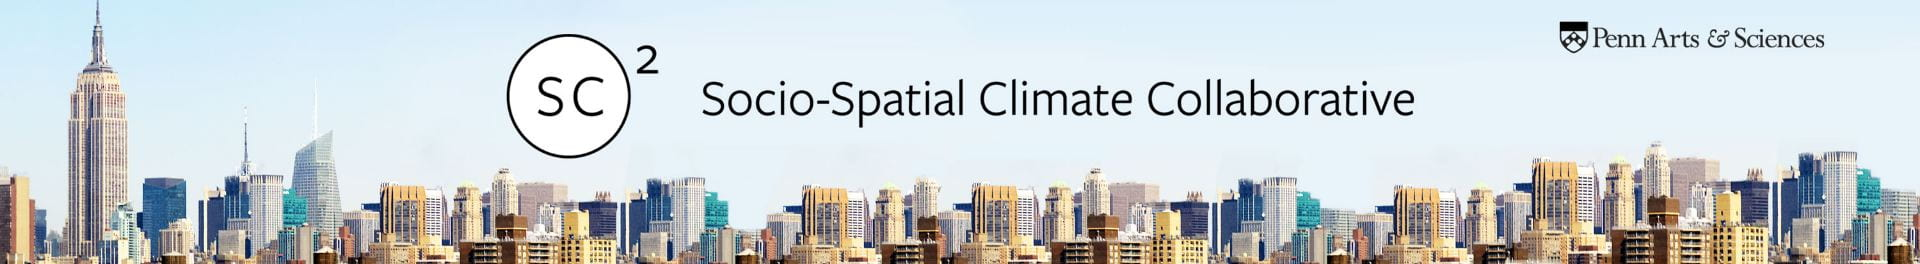 Socio-Spatial Climate Collaborative, or (SC)2